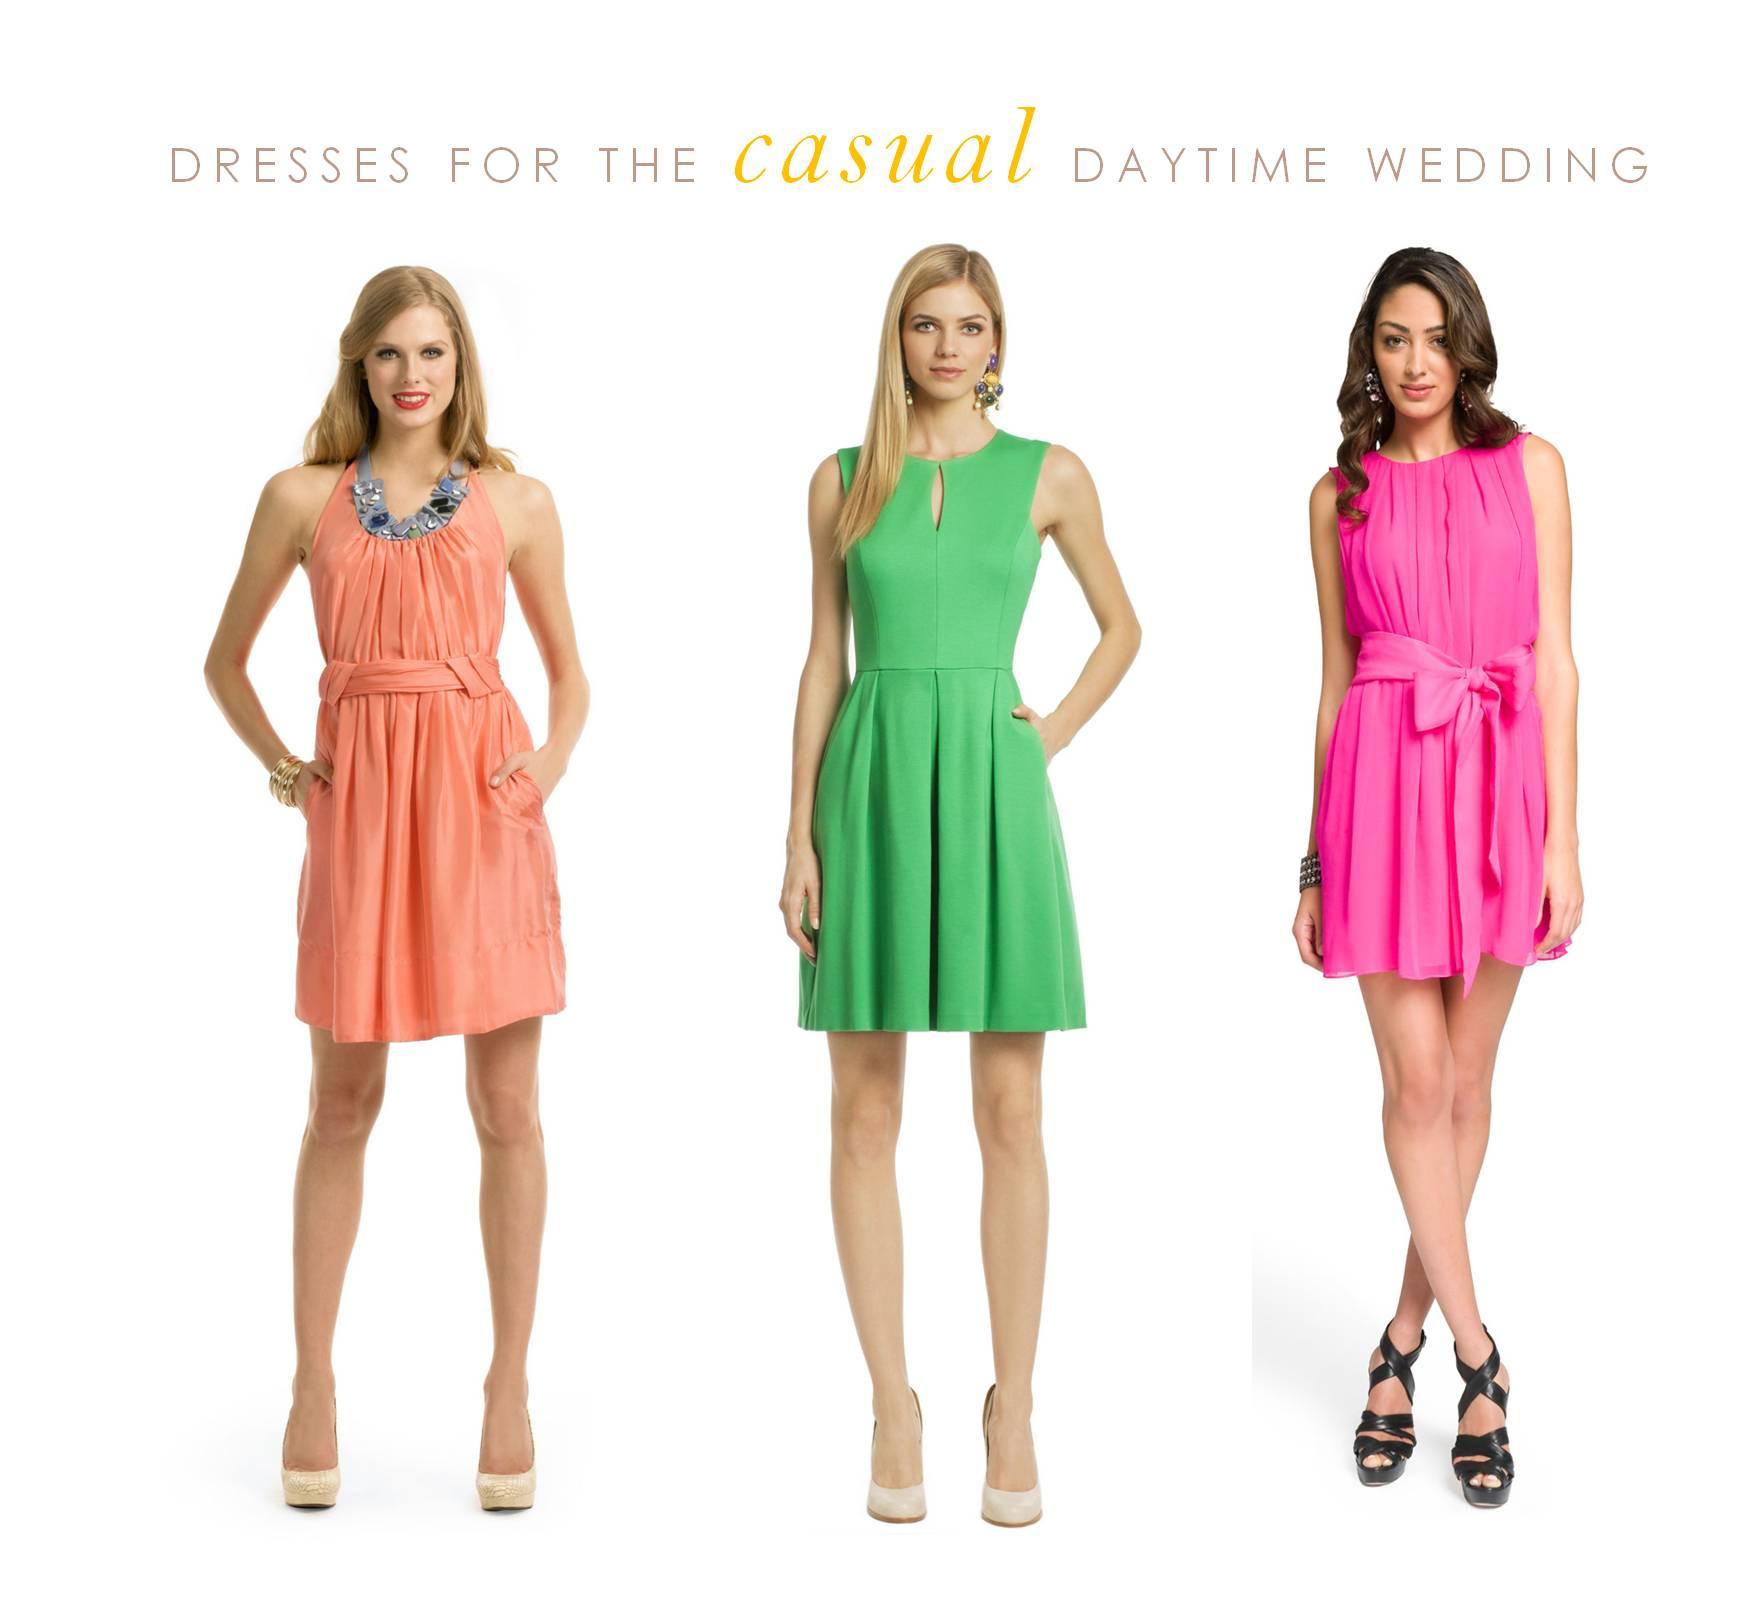 Daytime dresses for the guest of a wedding